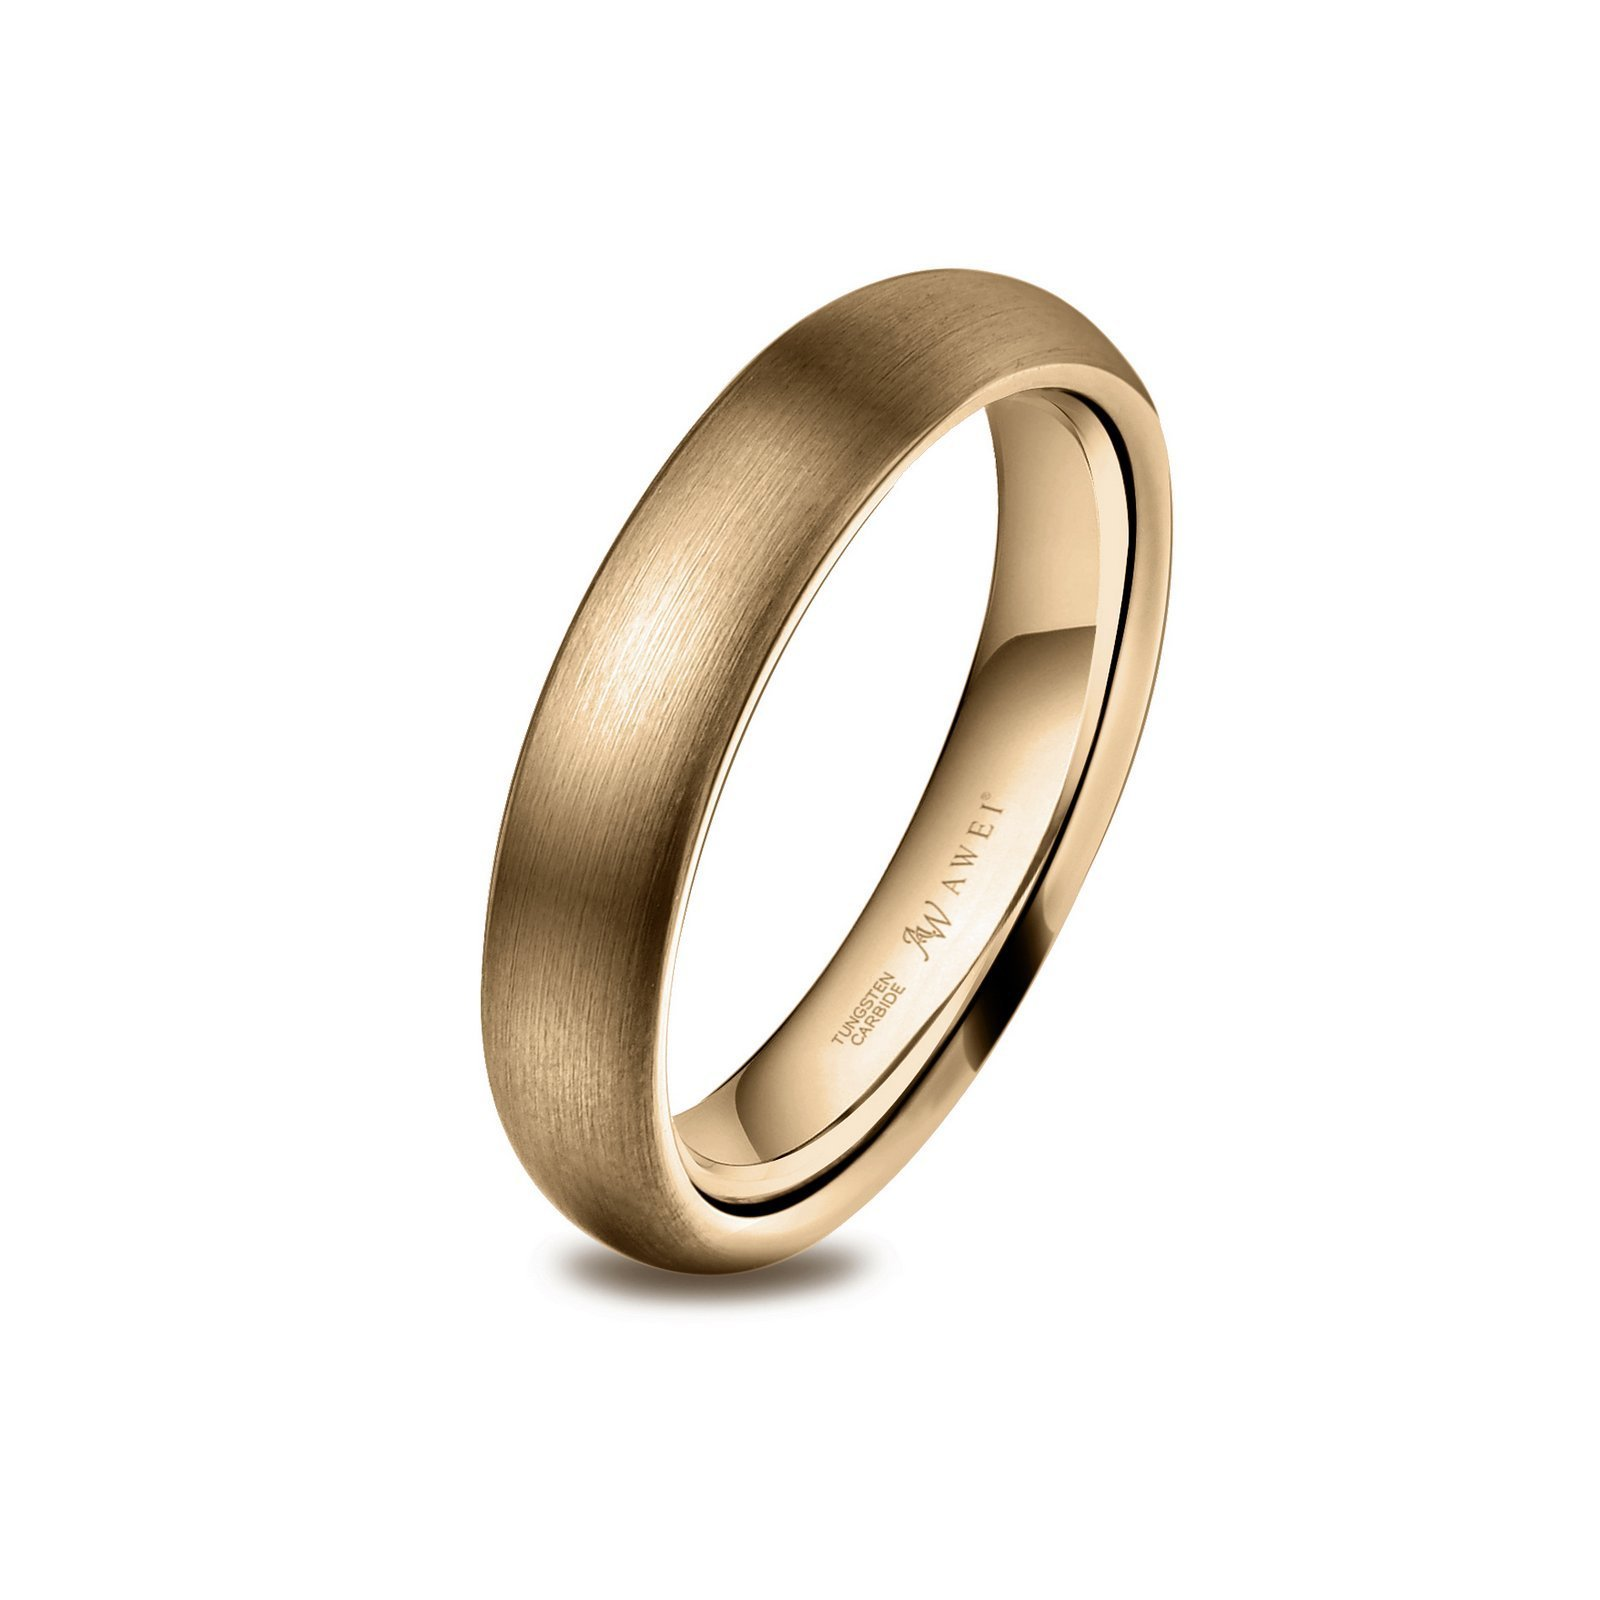 AW Tungsten Rings Matte Brushed Wedding Band - Gold Unisex Comfort Fit Engagement Ring 4mm, Size 7.5